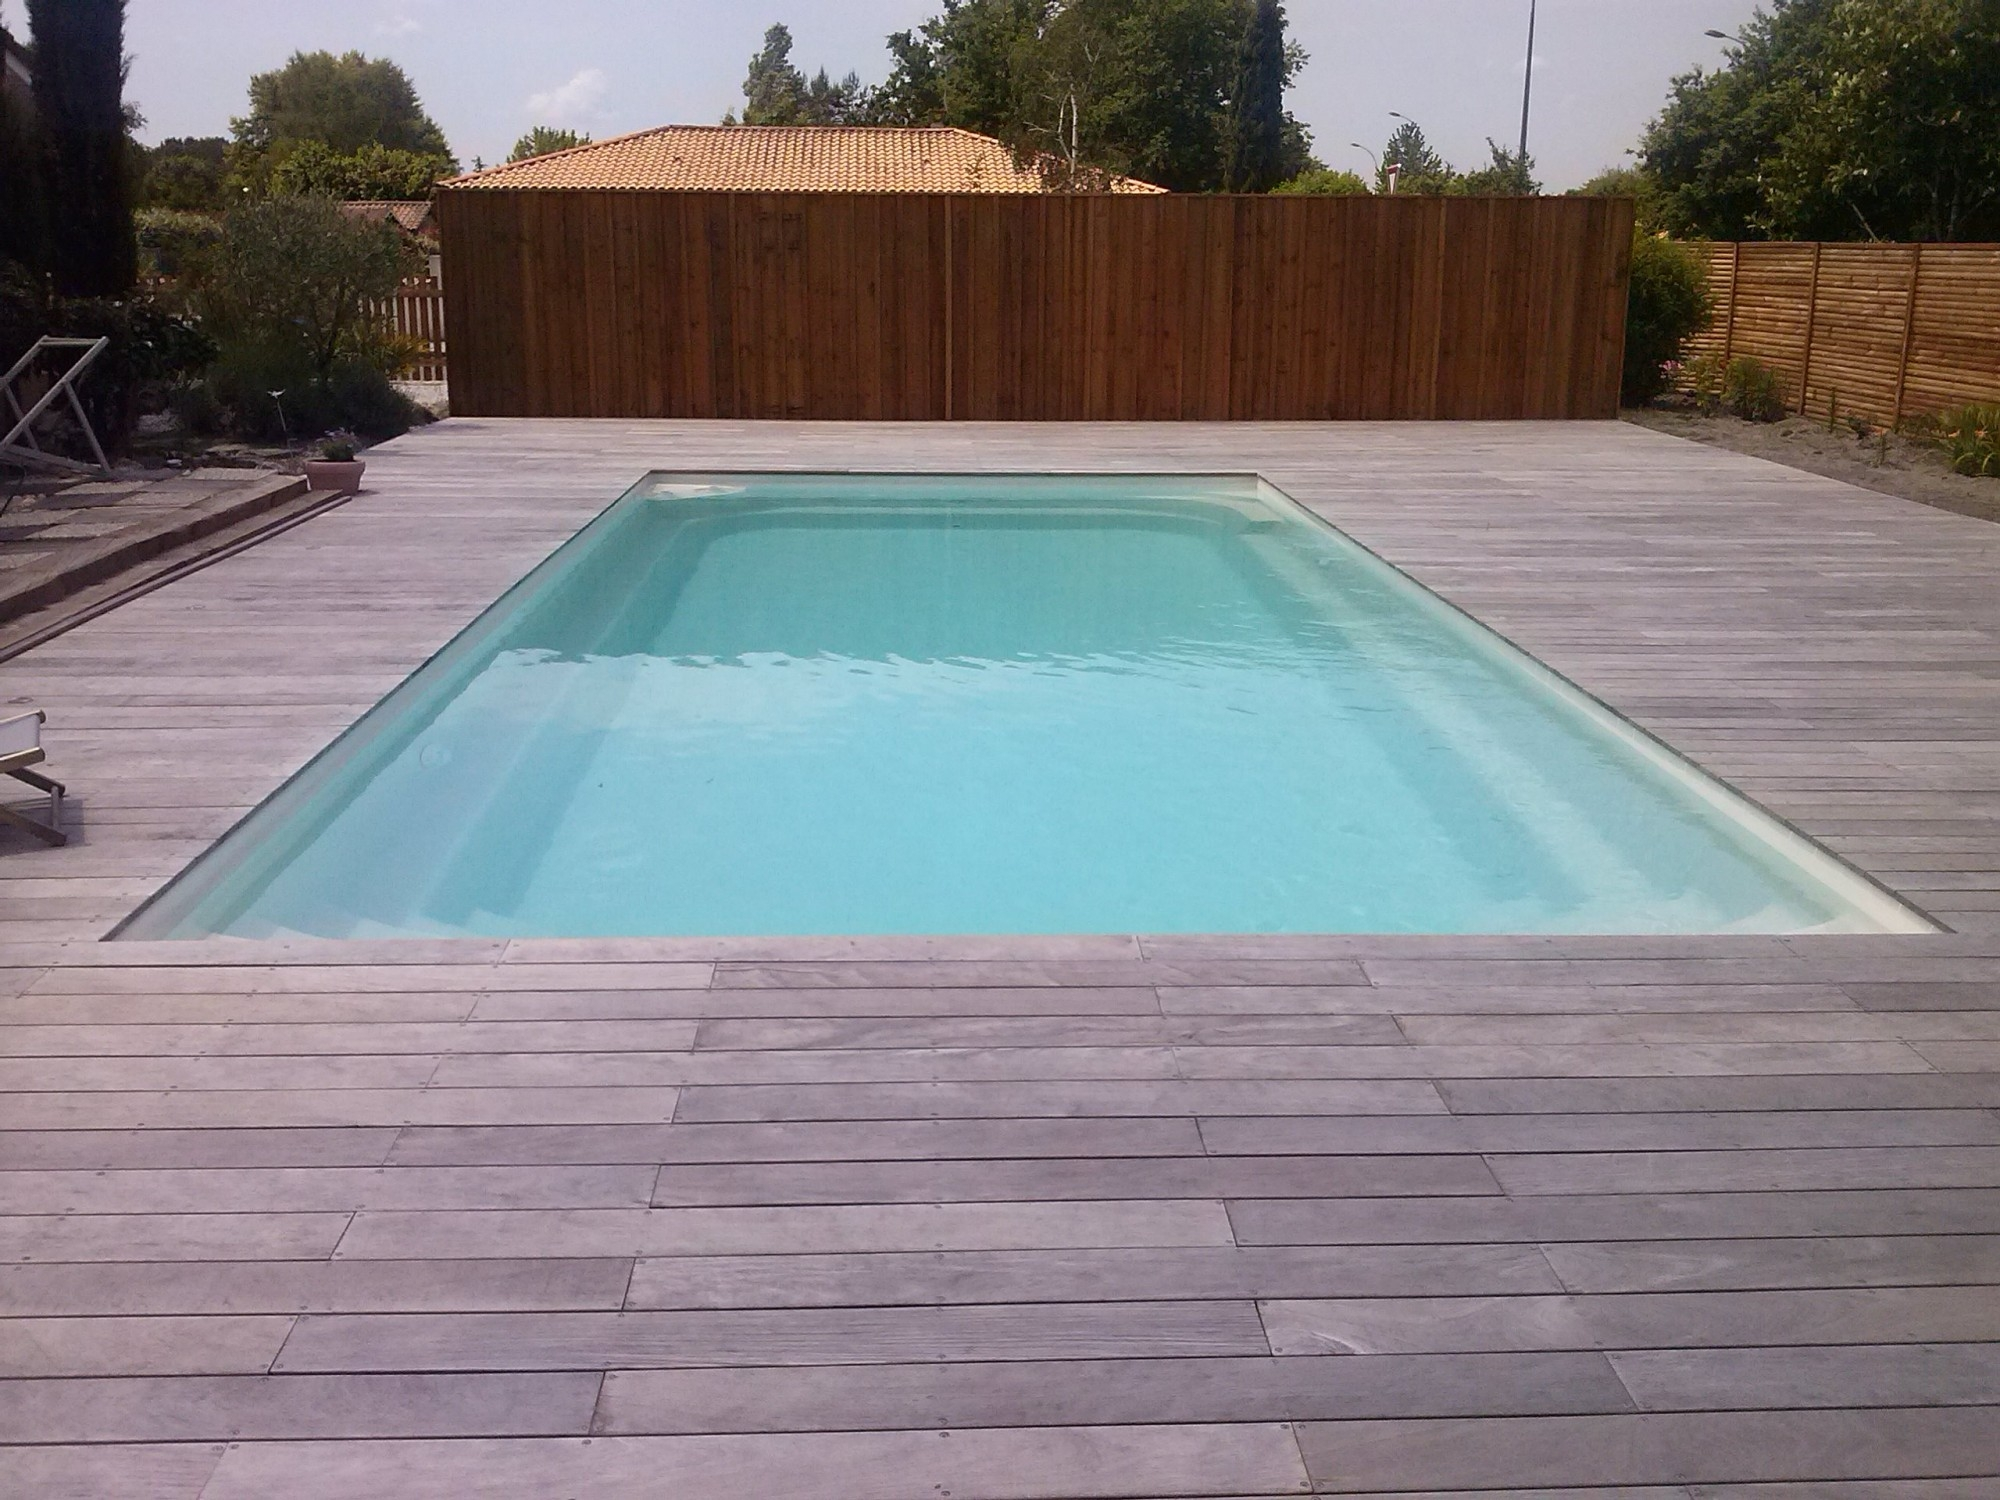 Travertin Exterieur Plage Piscine Carrelage